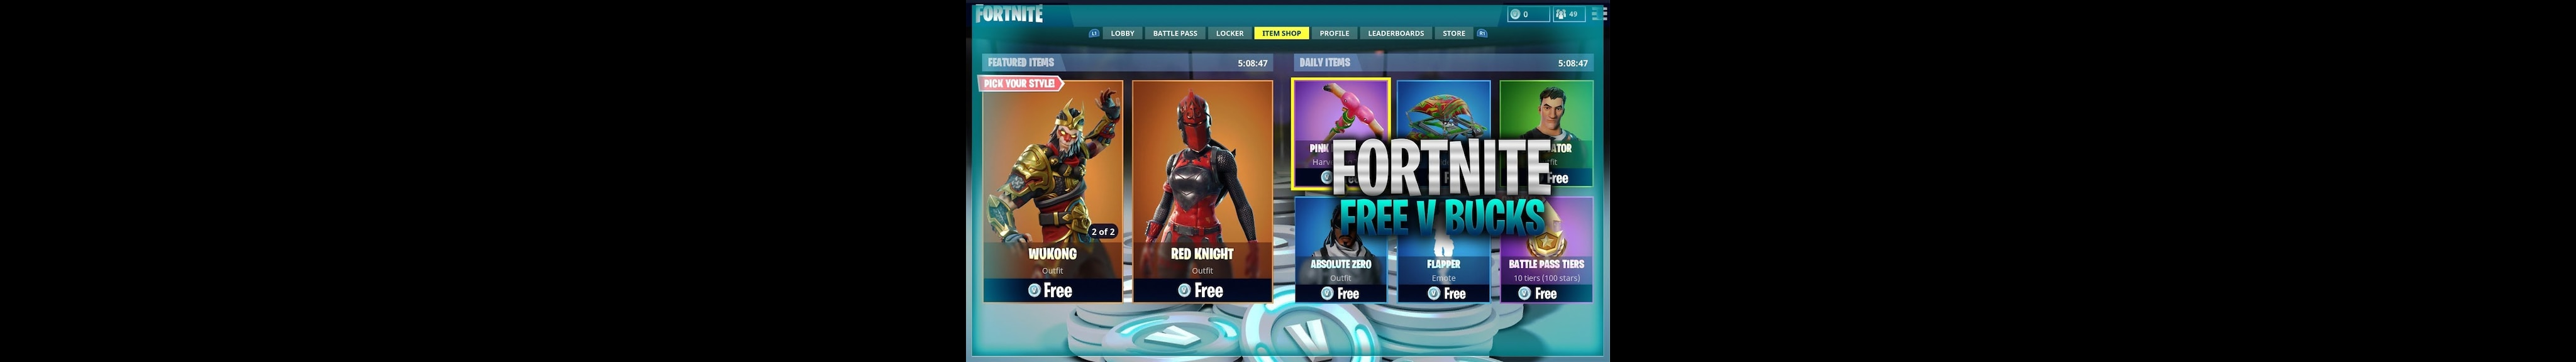 Fortnite Galaxy Ikonik Fortnite V Bucks Hack For Nintendo